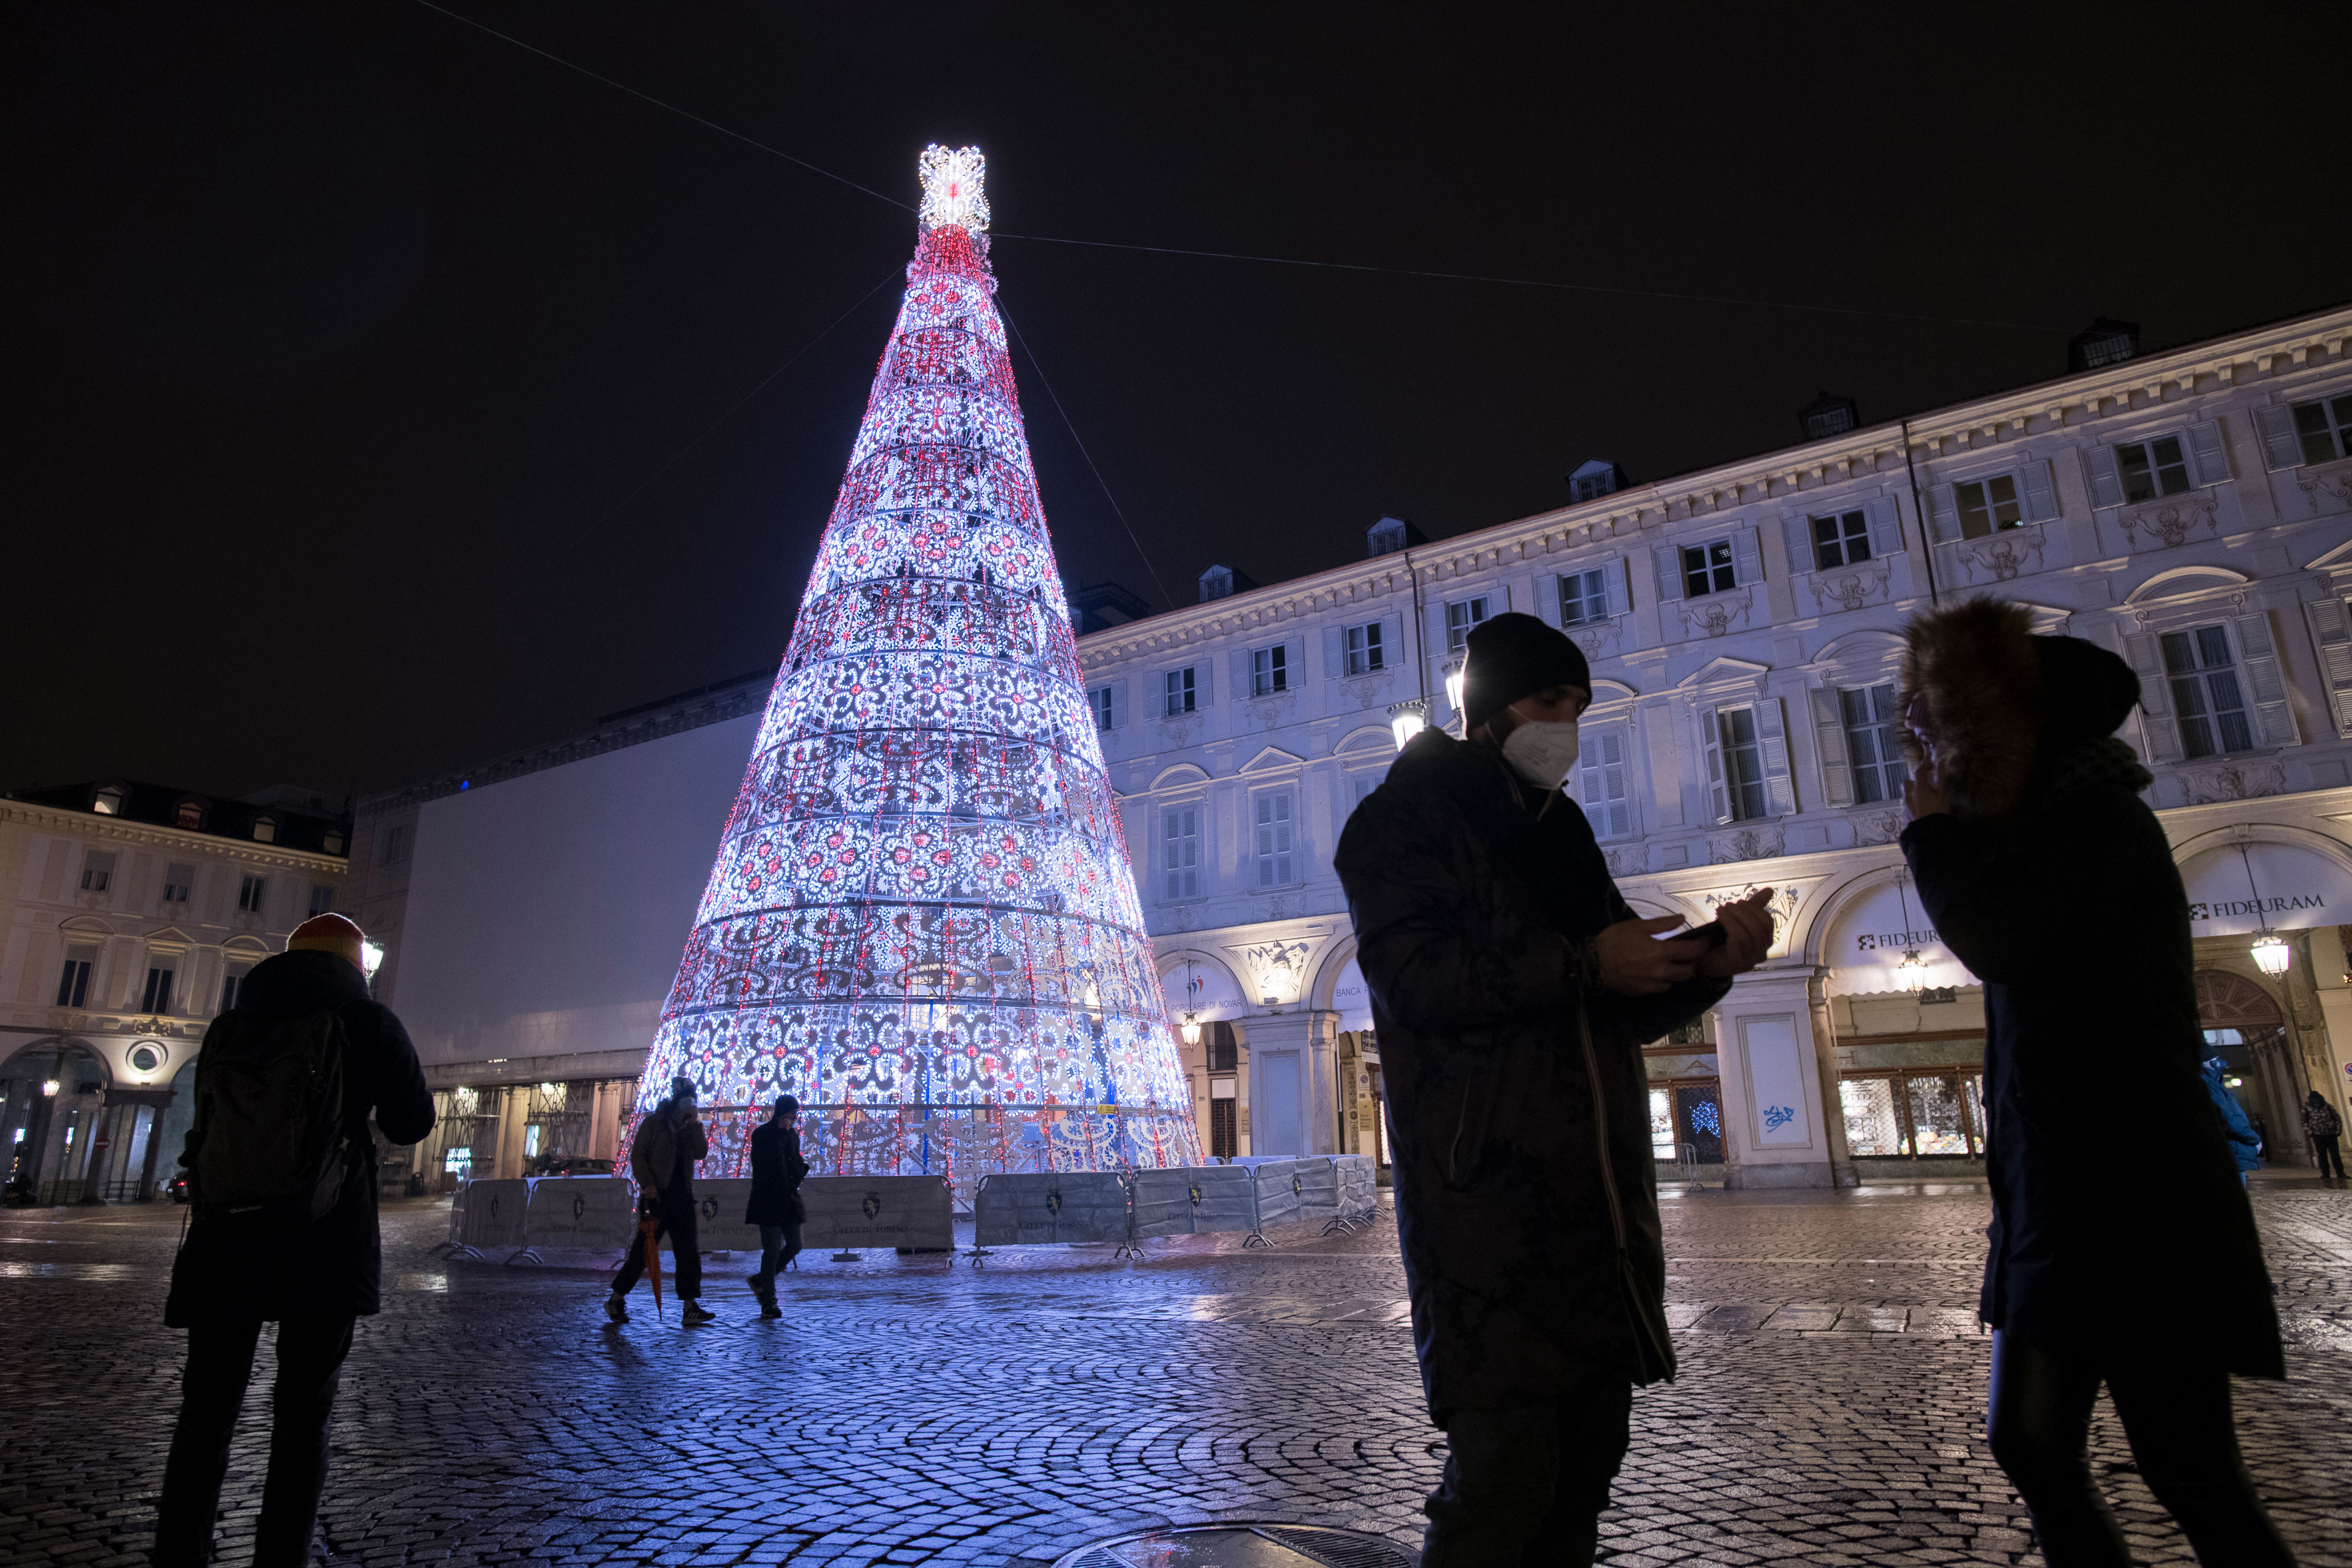 A Christmas tree illuminates Piazza San Carlo in Turin, Italy, on December 2.